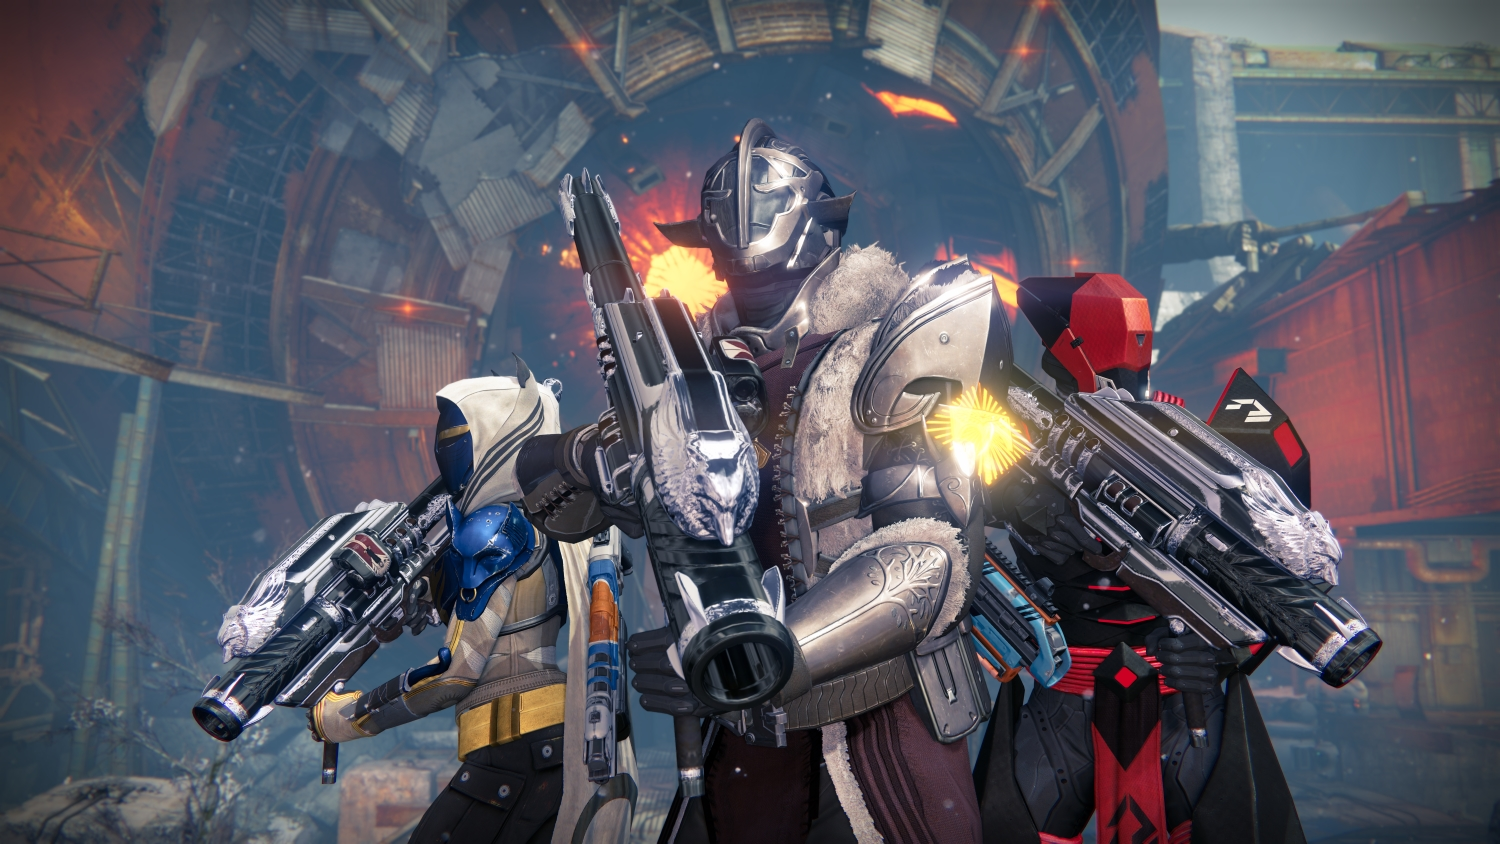 Destiny: Rise Of Iron hands-on preview and interview – 'We're not afraid of change'